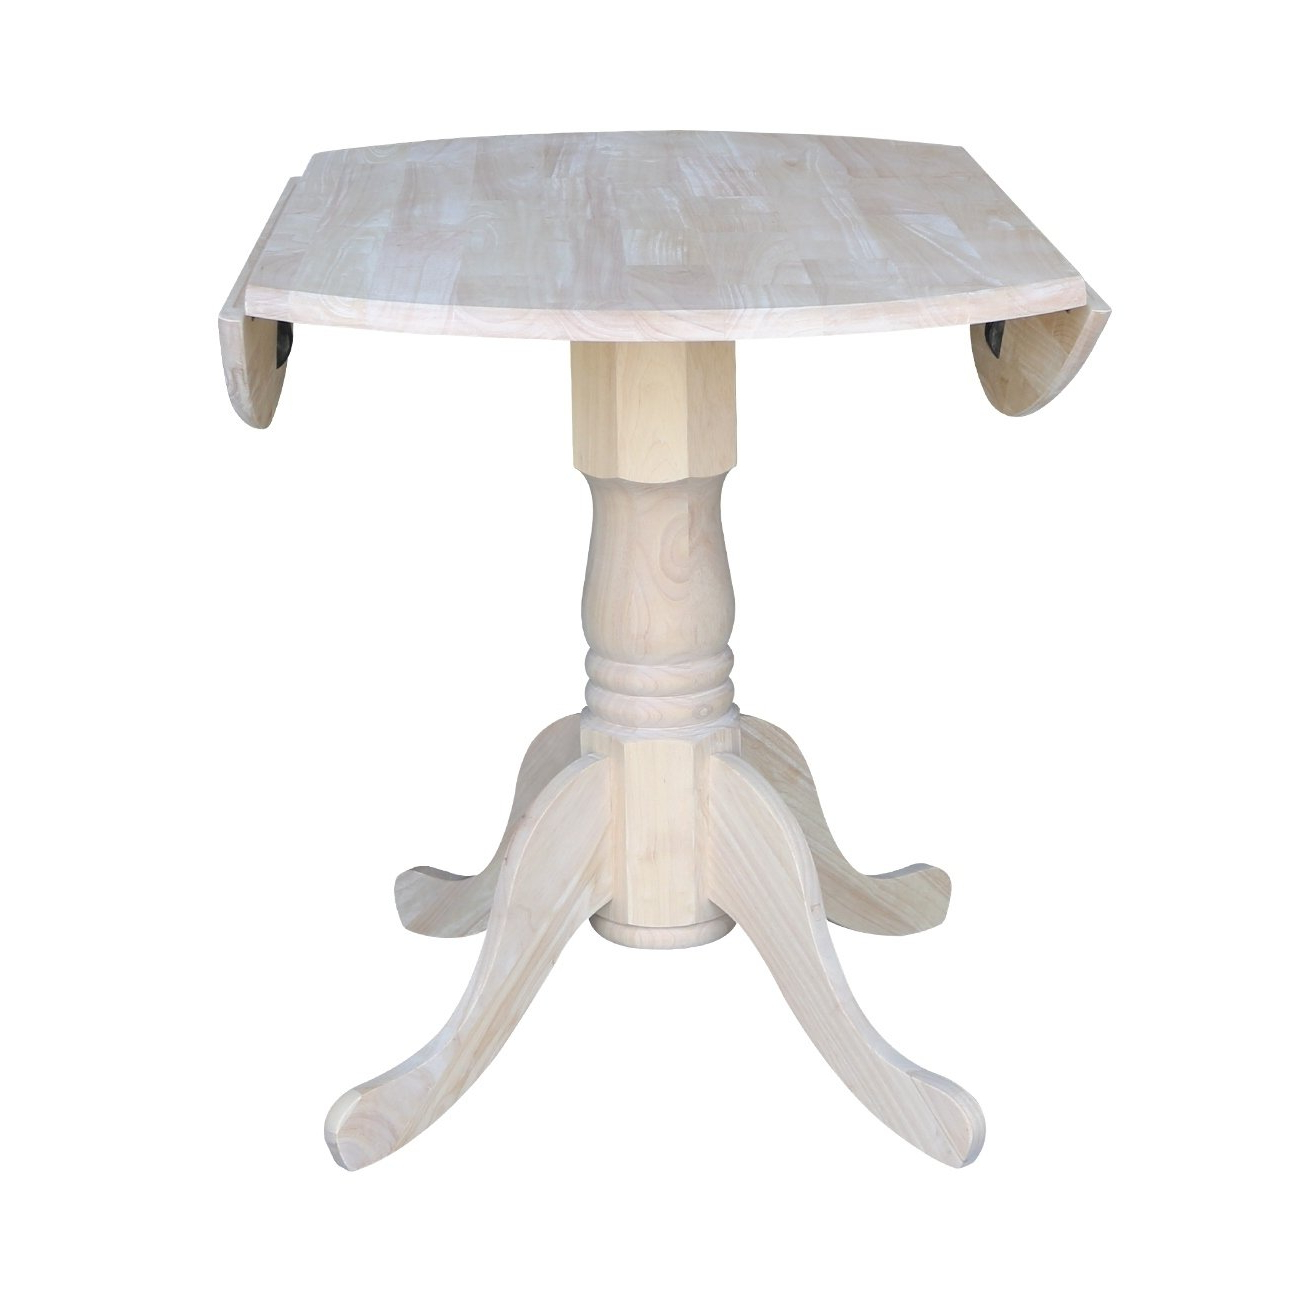 Most Recent Amazon – Transitional Casual Round 36 Inch Dual Drop Within Transitional Drop Leaf Casual Dining Tables (View 14 of 30)